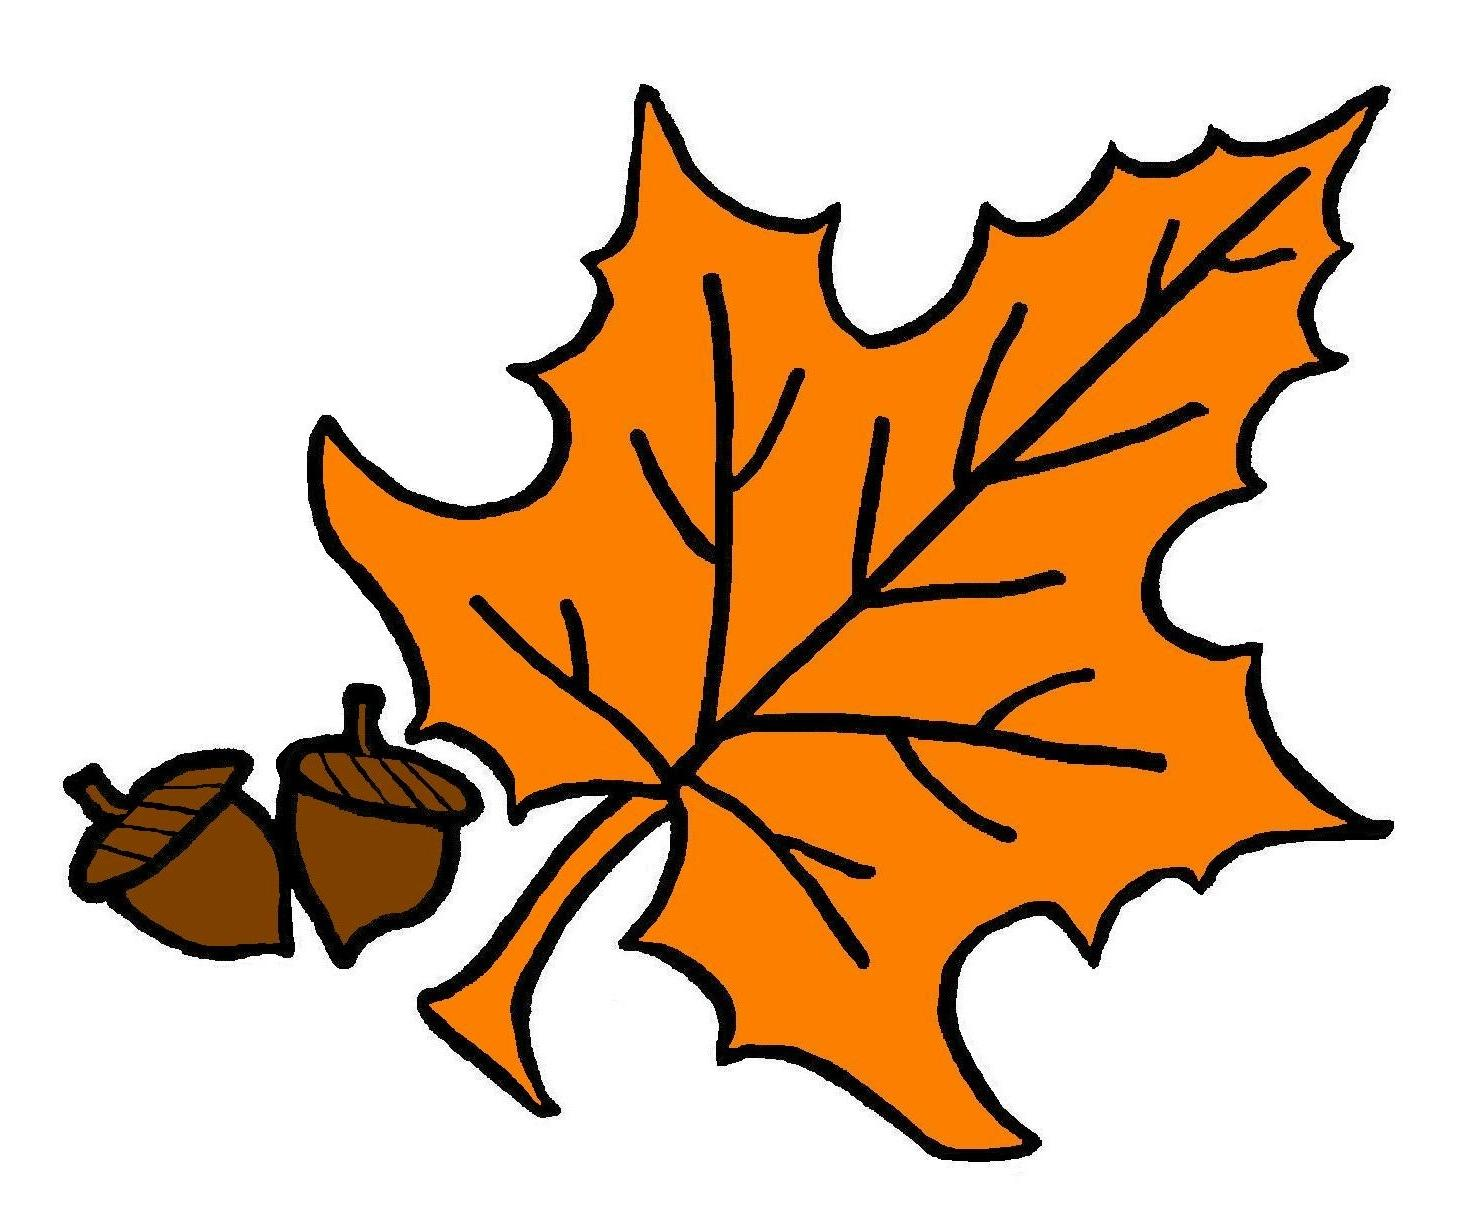 1457x1222 Hd Leaves Clip Art Free Tree With Fall Design